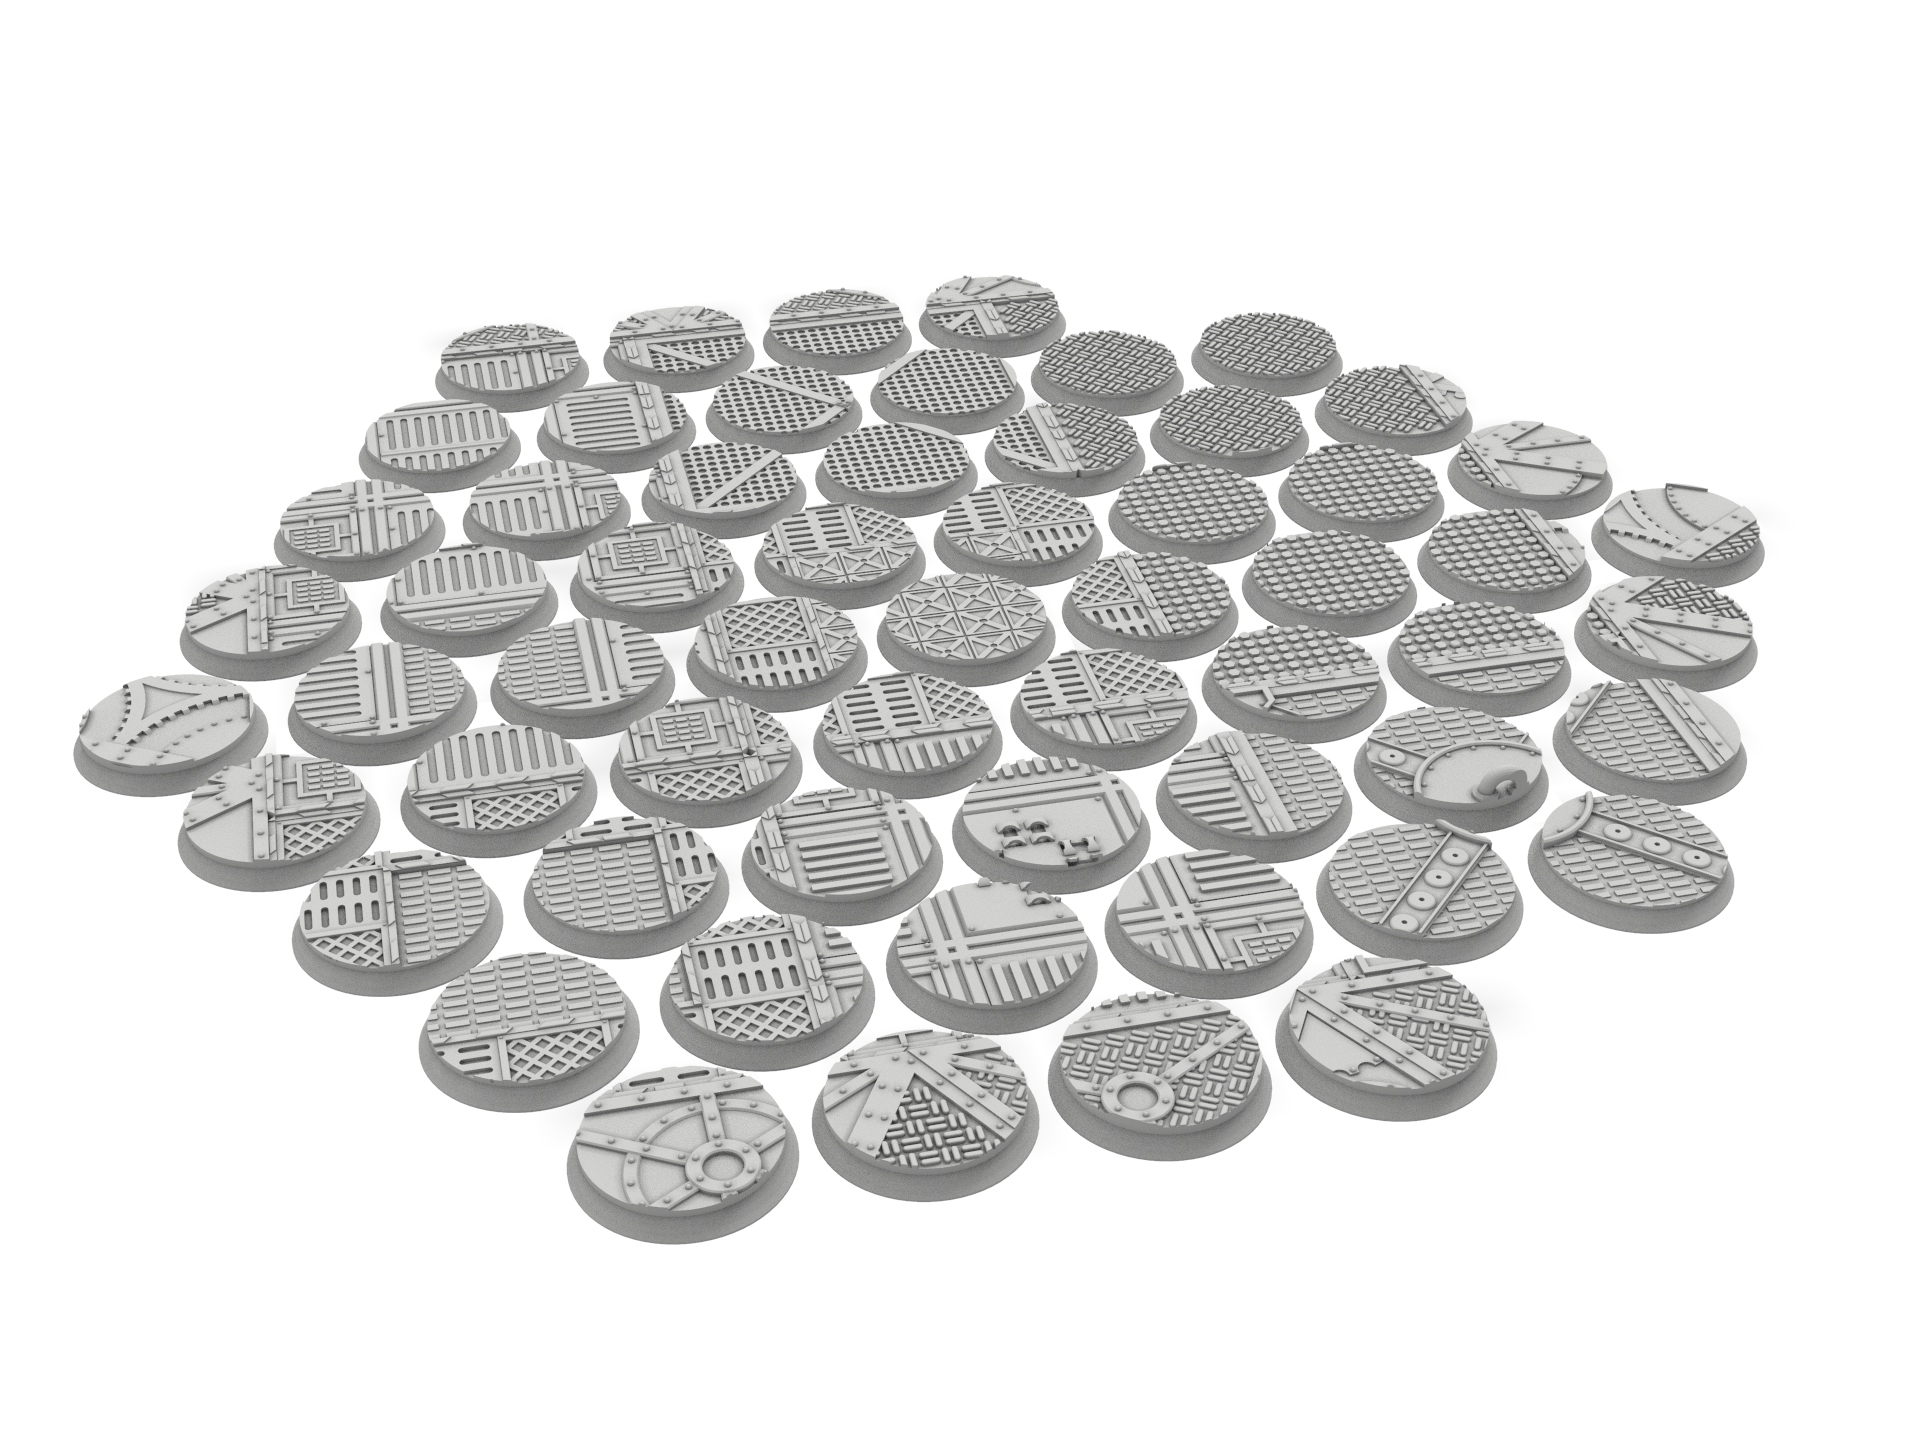 untitled.80.jpg Download STL file x1000 Round, oval, square, rectangular, hexagonal, industrial textured bases • 3D print design, Alario